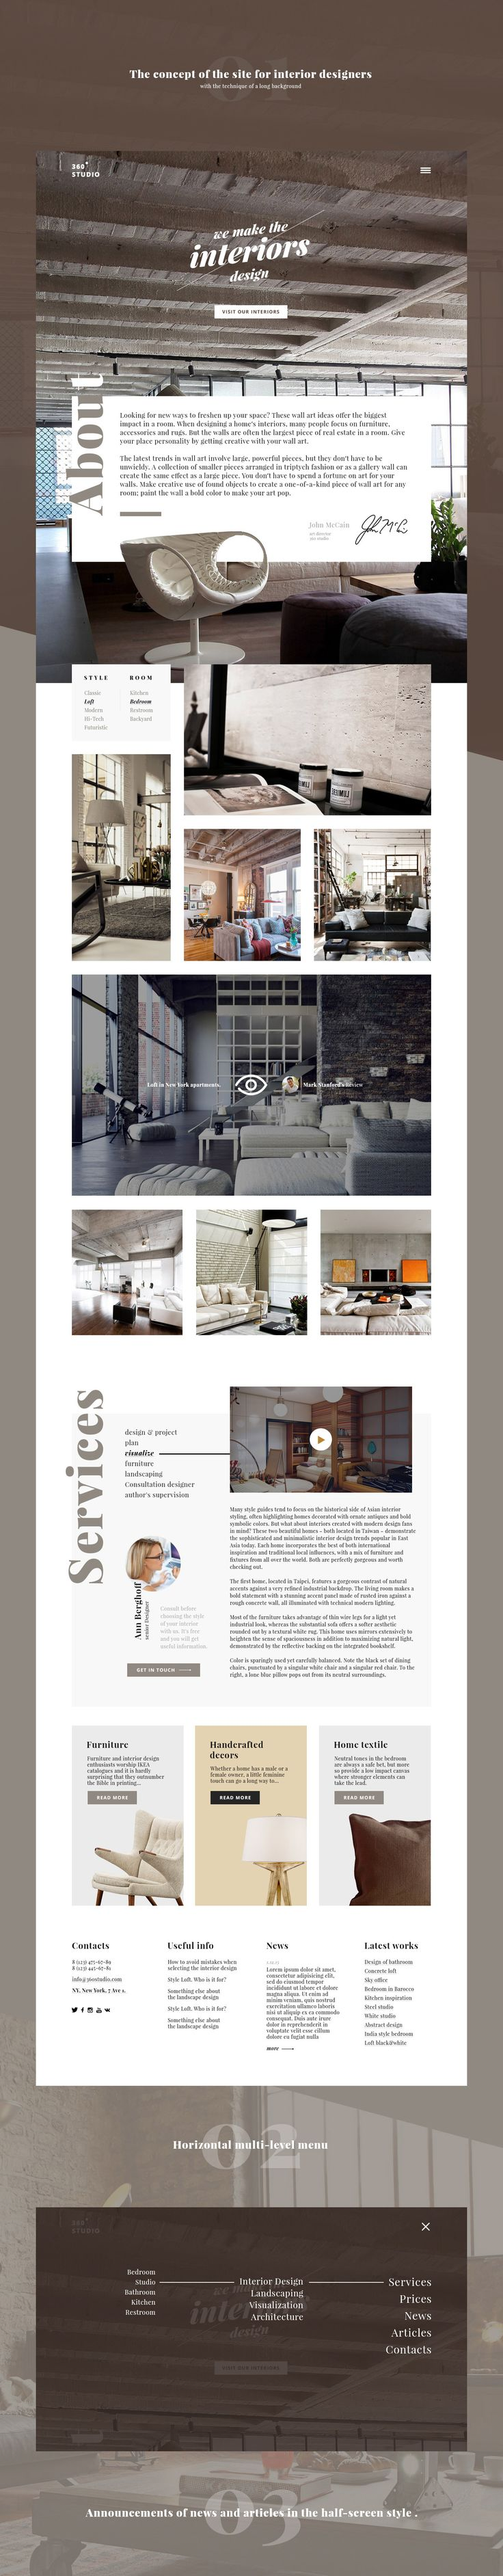 Best 25+ Interior design websites ideas on Pinterest